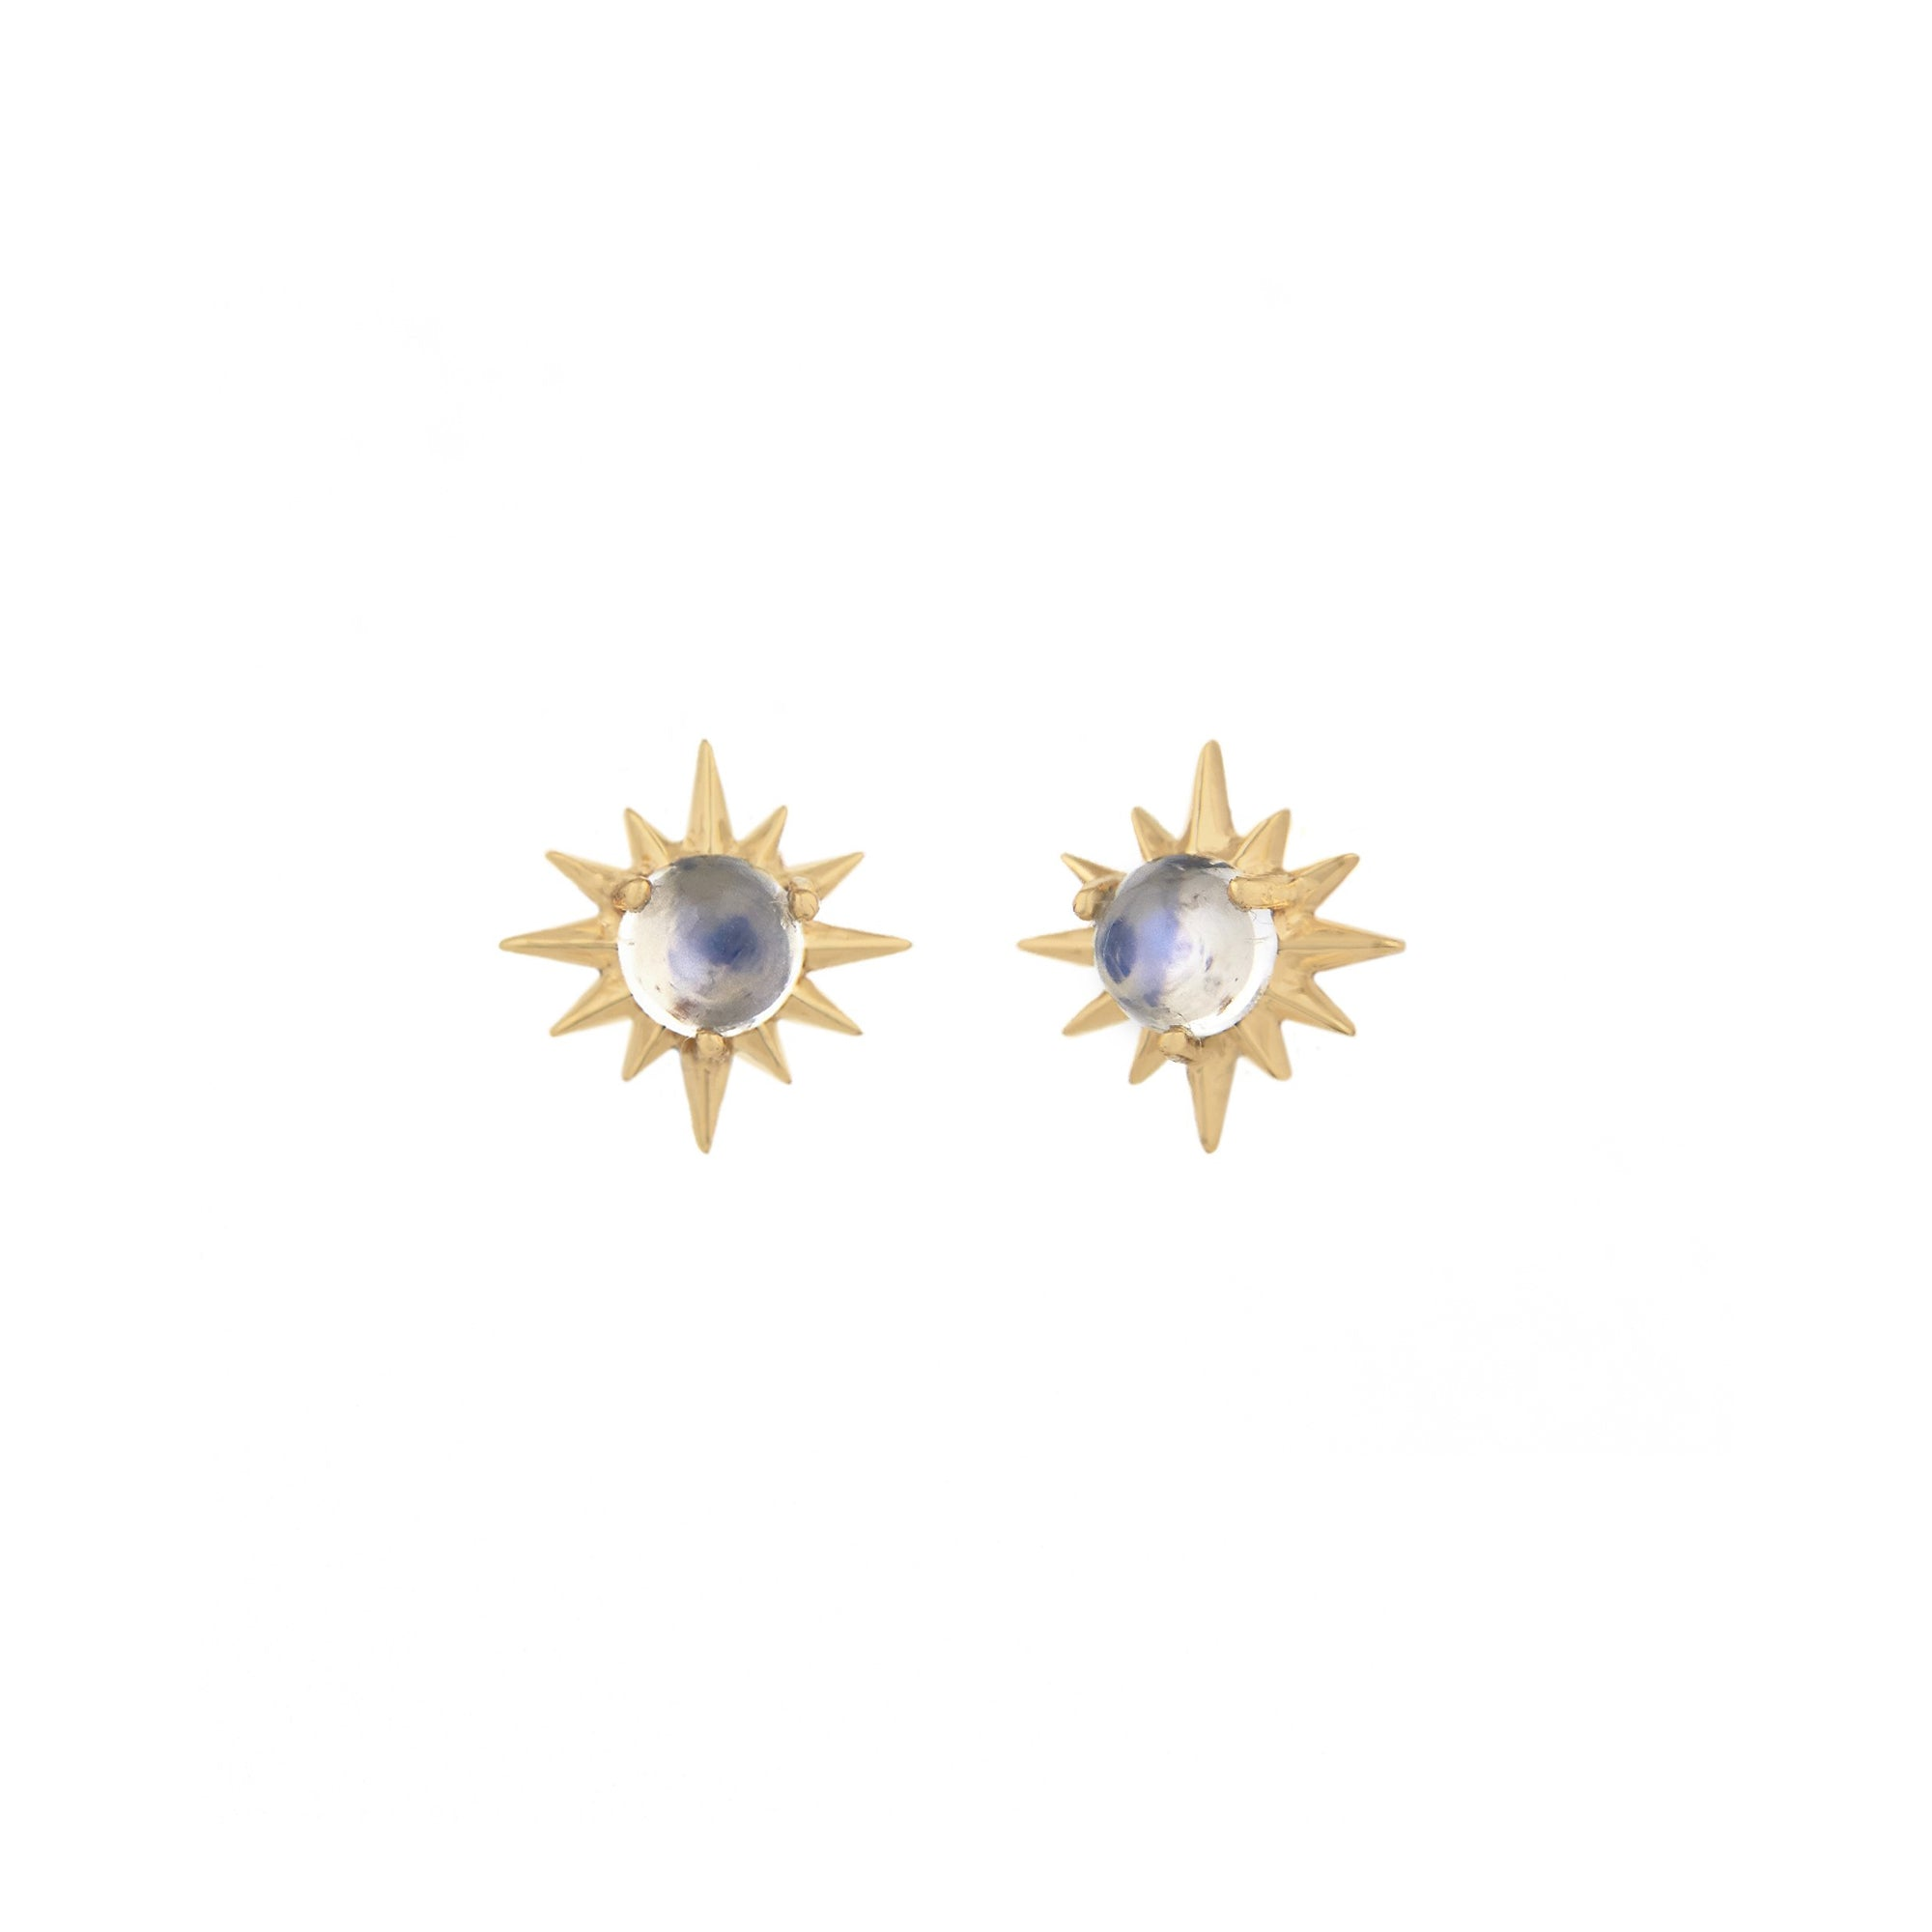 Moonstone Sun Studs by Celine Daoust for Broken English Jewelry